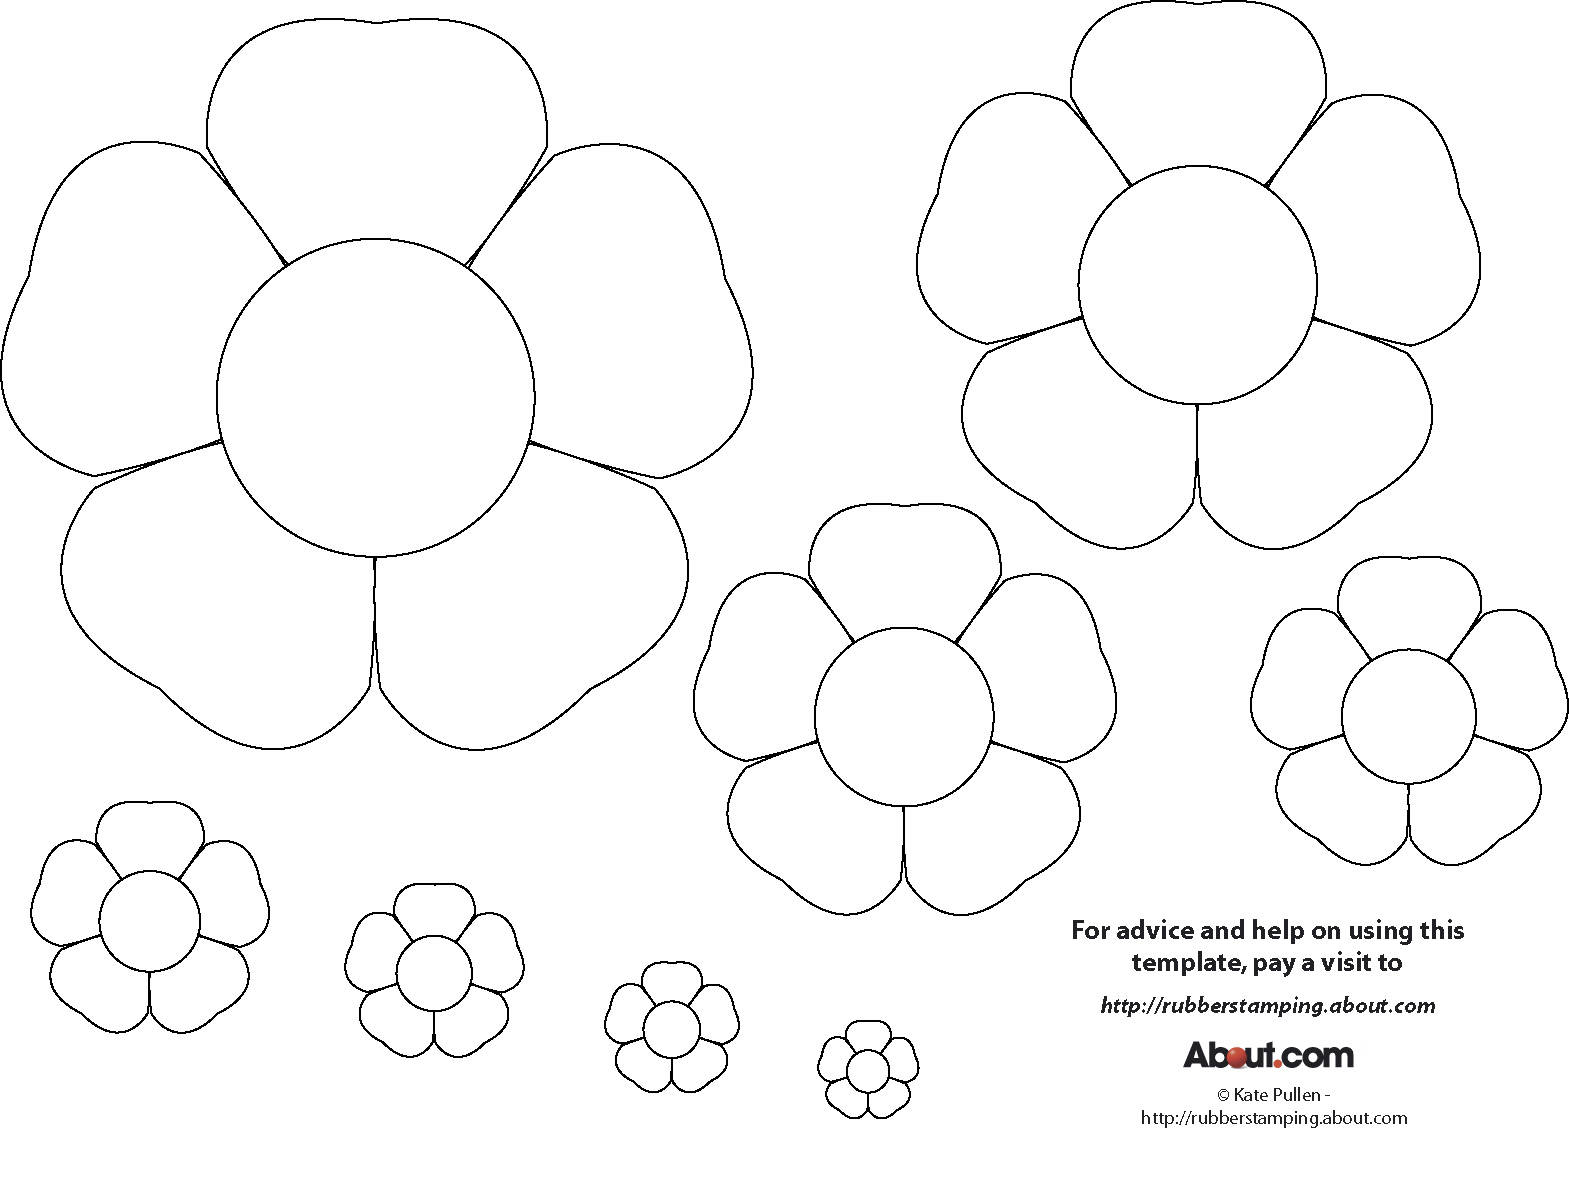 image regarding Daisy Template Printable called 15 Printable Flower Routines Ideas Illustrations or photos - Paper Flower